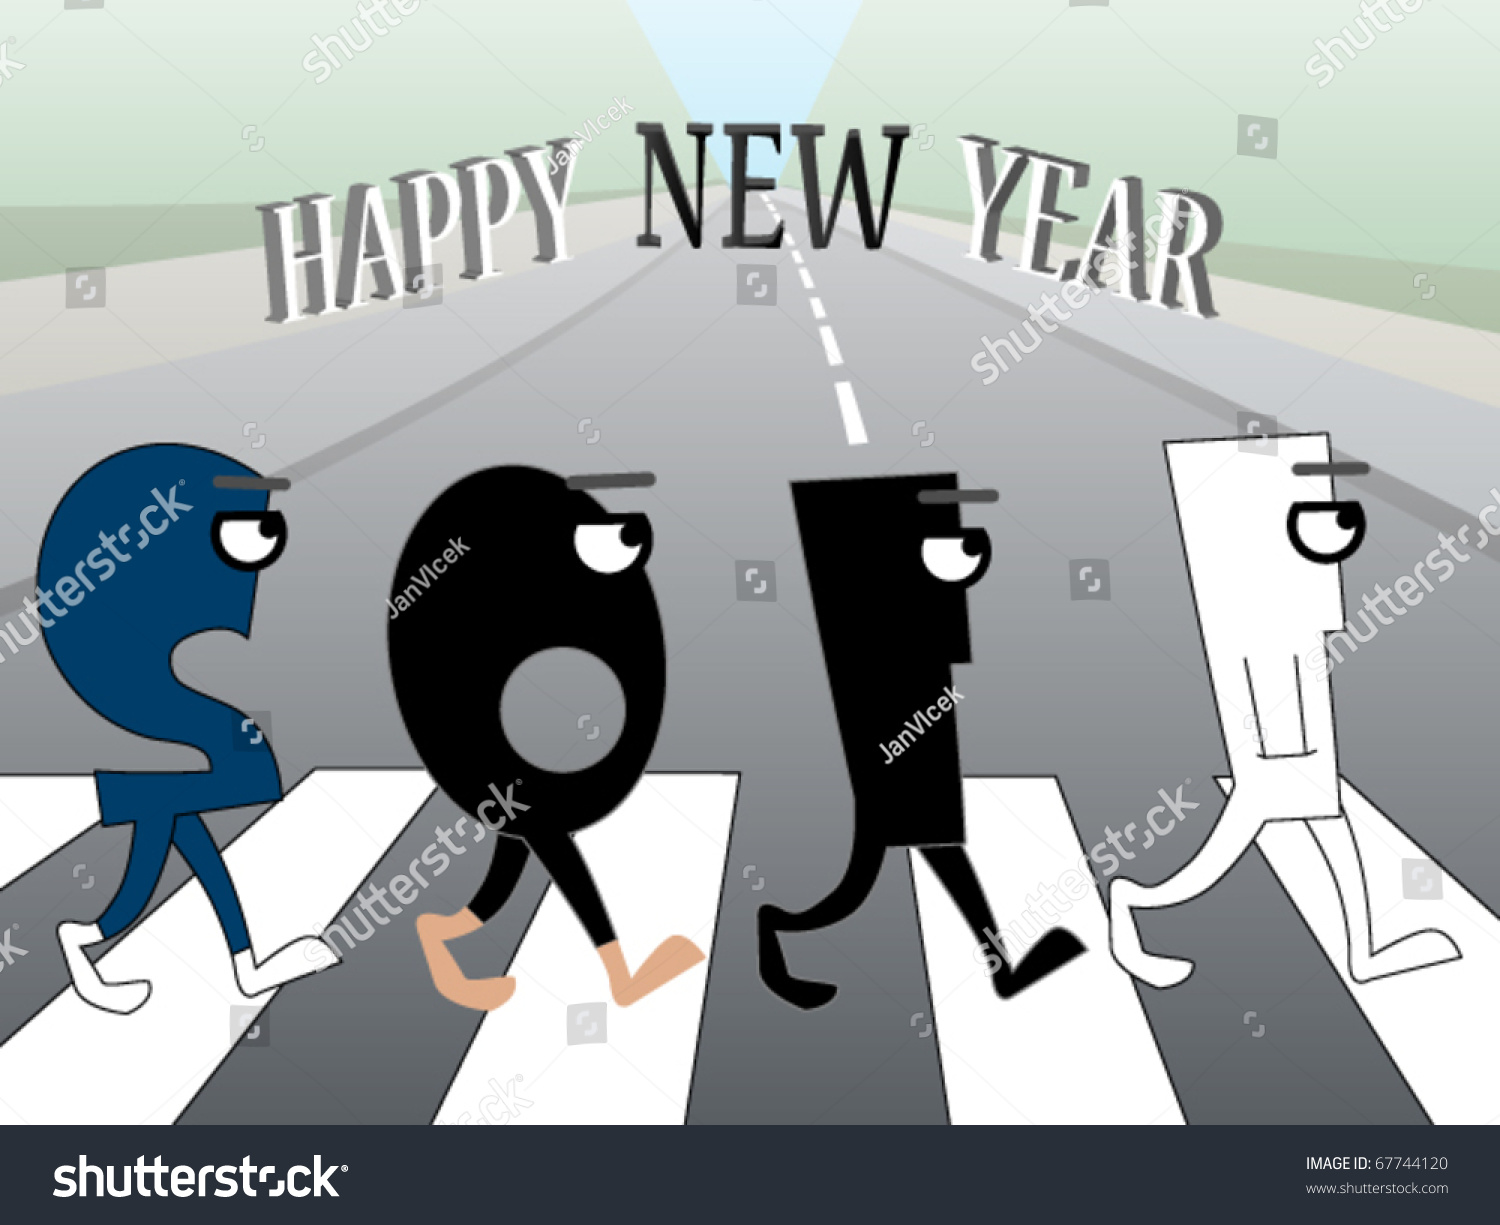 funny new years greeting card where numbers are crossing the street